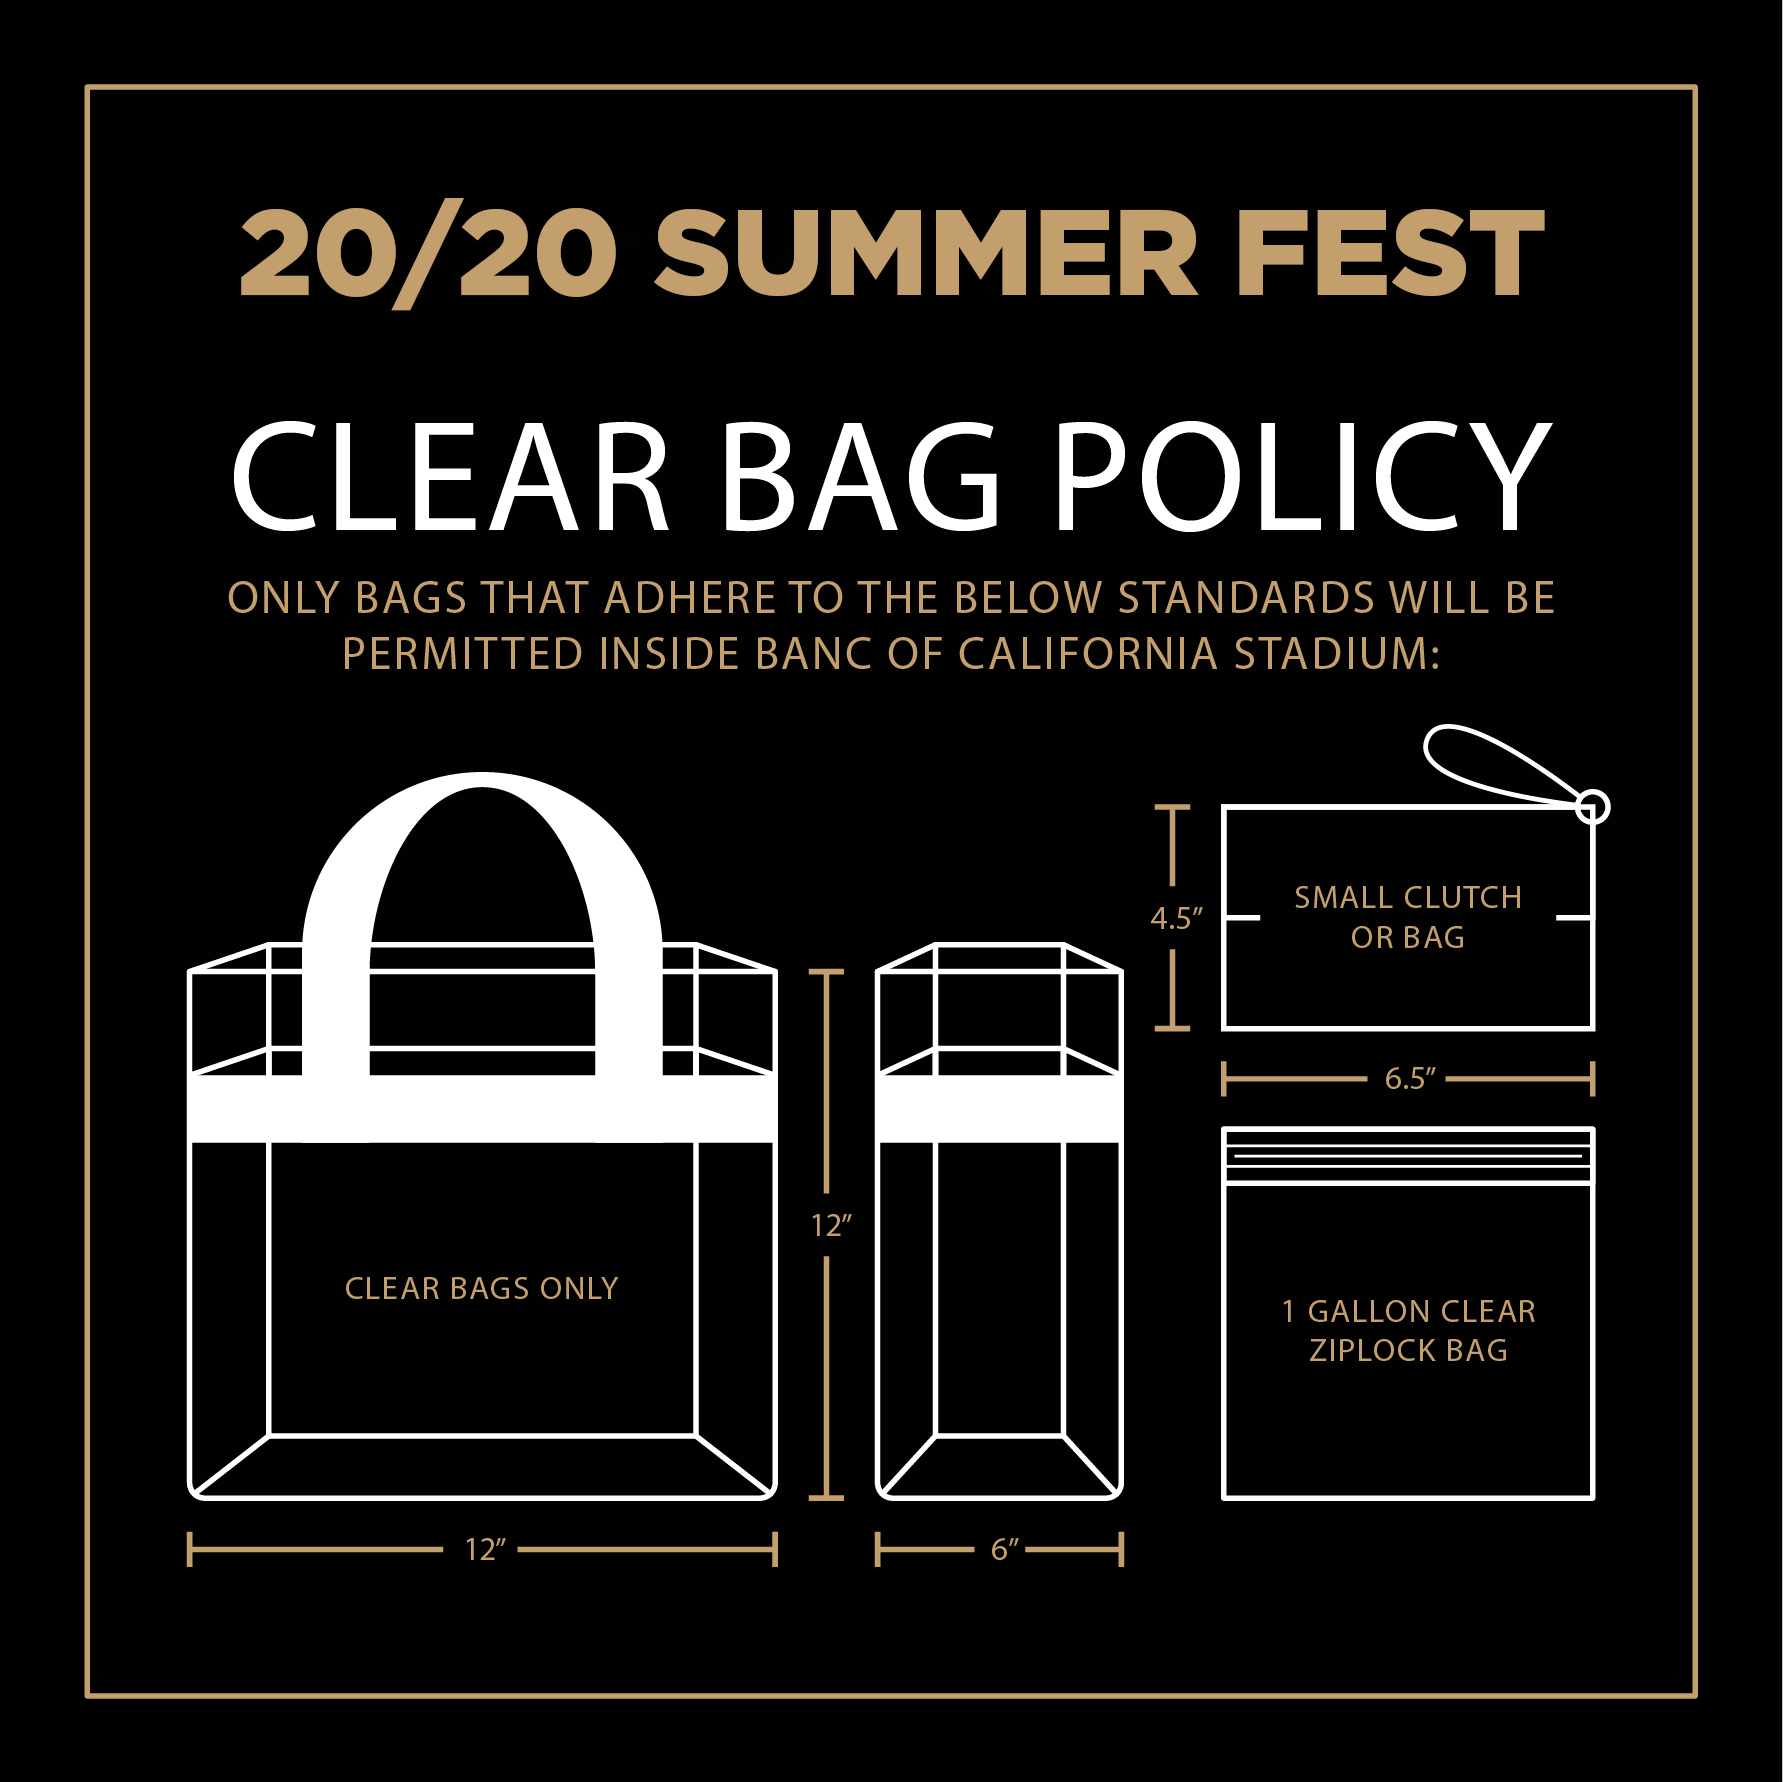 20/20 Summer Fest Clear Bag Policy